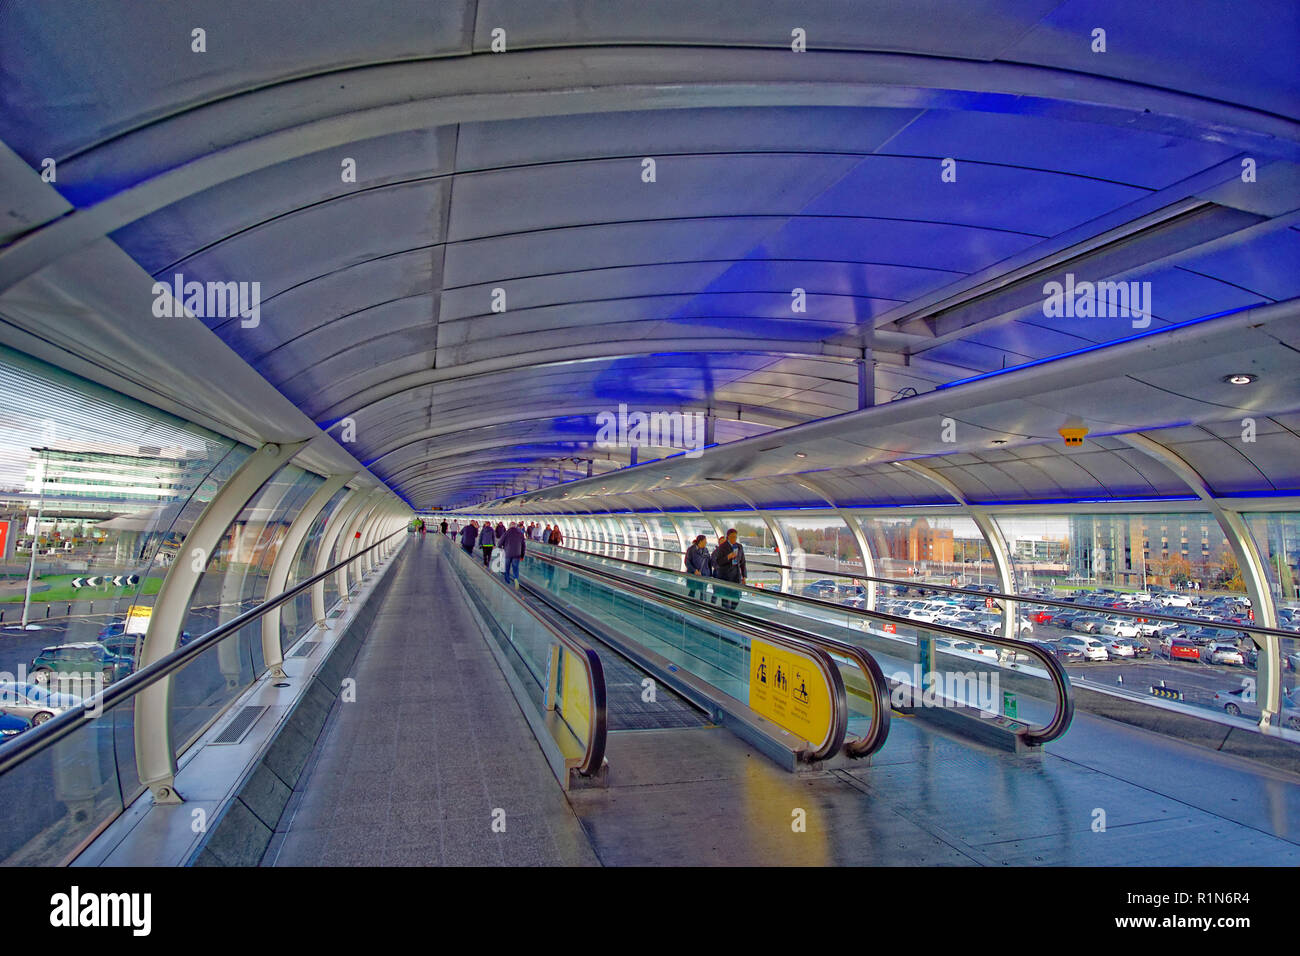 Inter-terminal walkway at Manchester Airport, Ringway, Greater Manchester, England. UK. - Stock Image